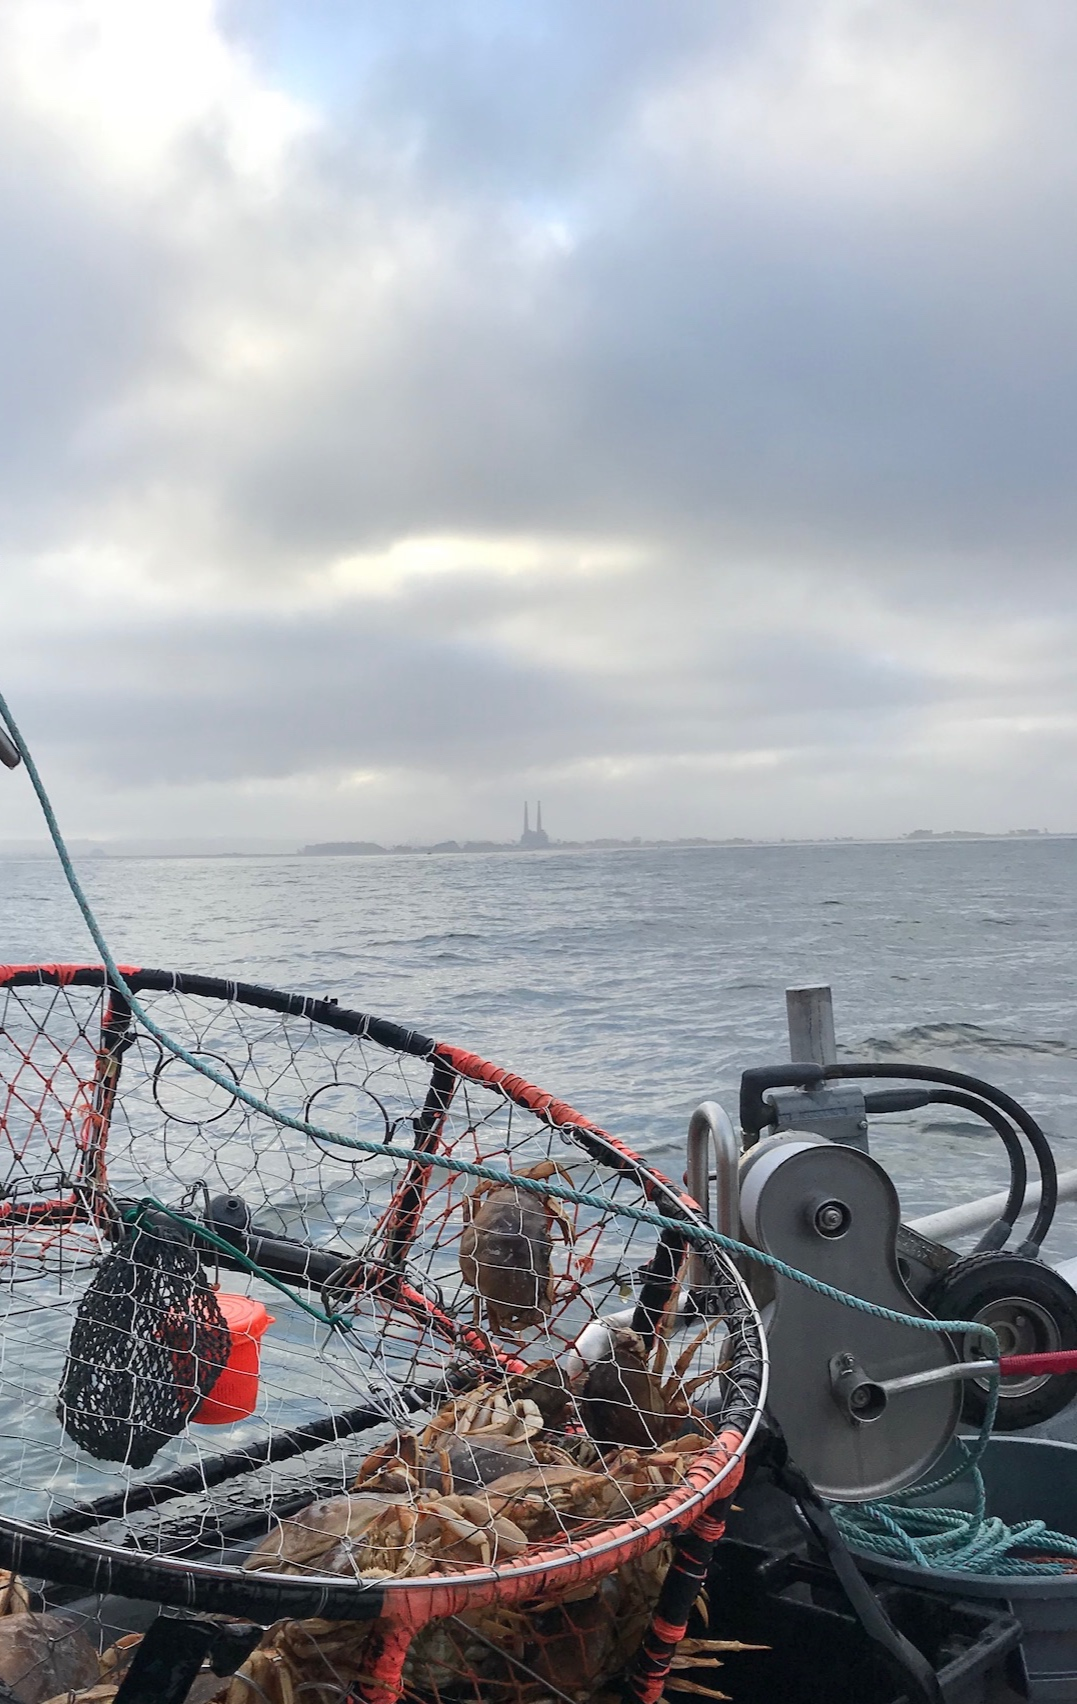 The stacks serve as a navigational landmark for fishermen while they are harvesting their sustainable catch in and around the Bay. Photo credit:  Calder Deyerle .